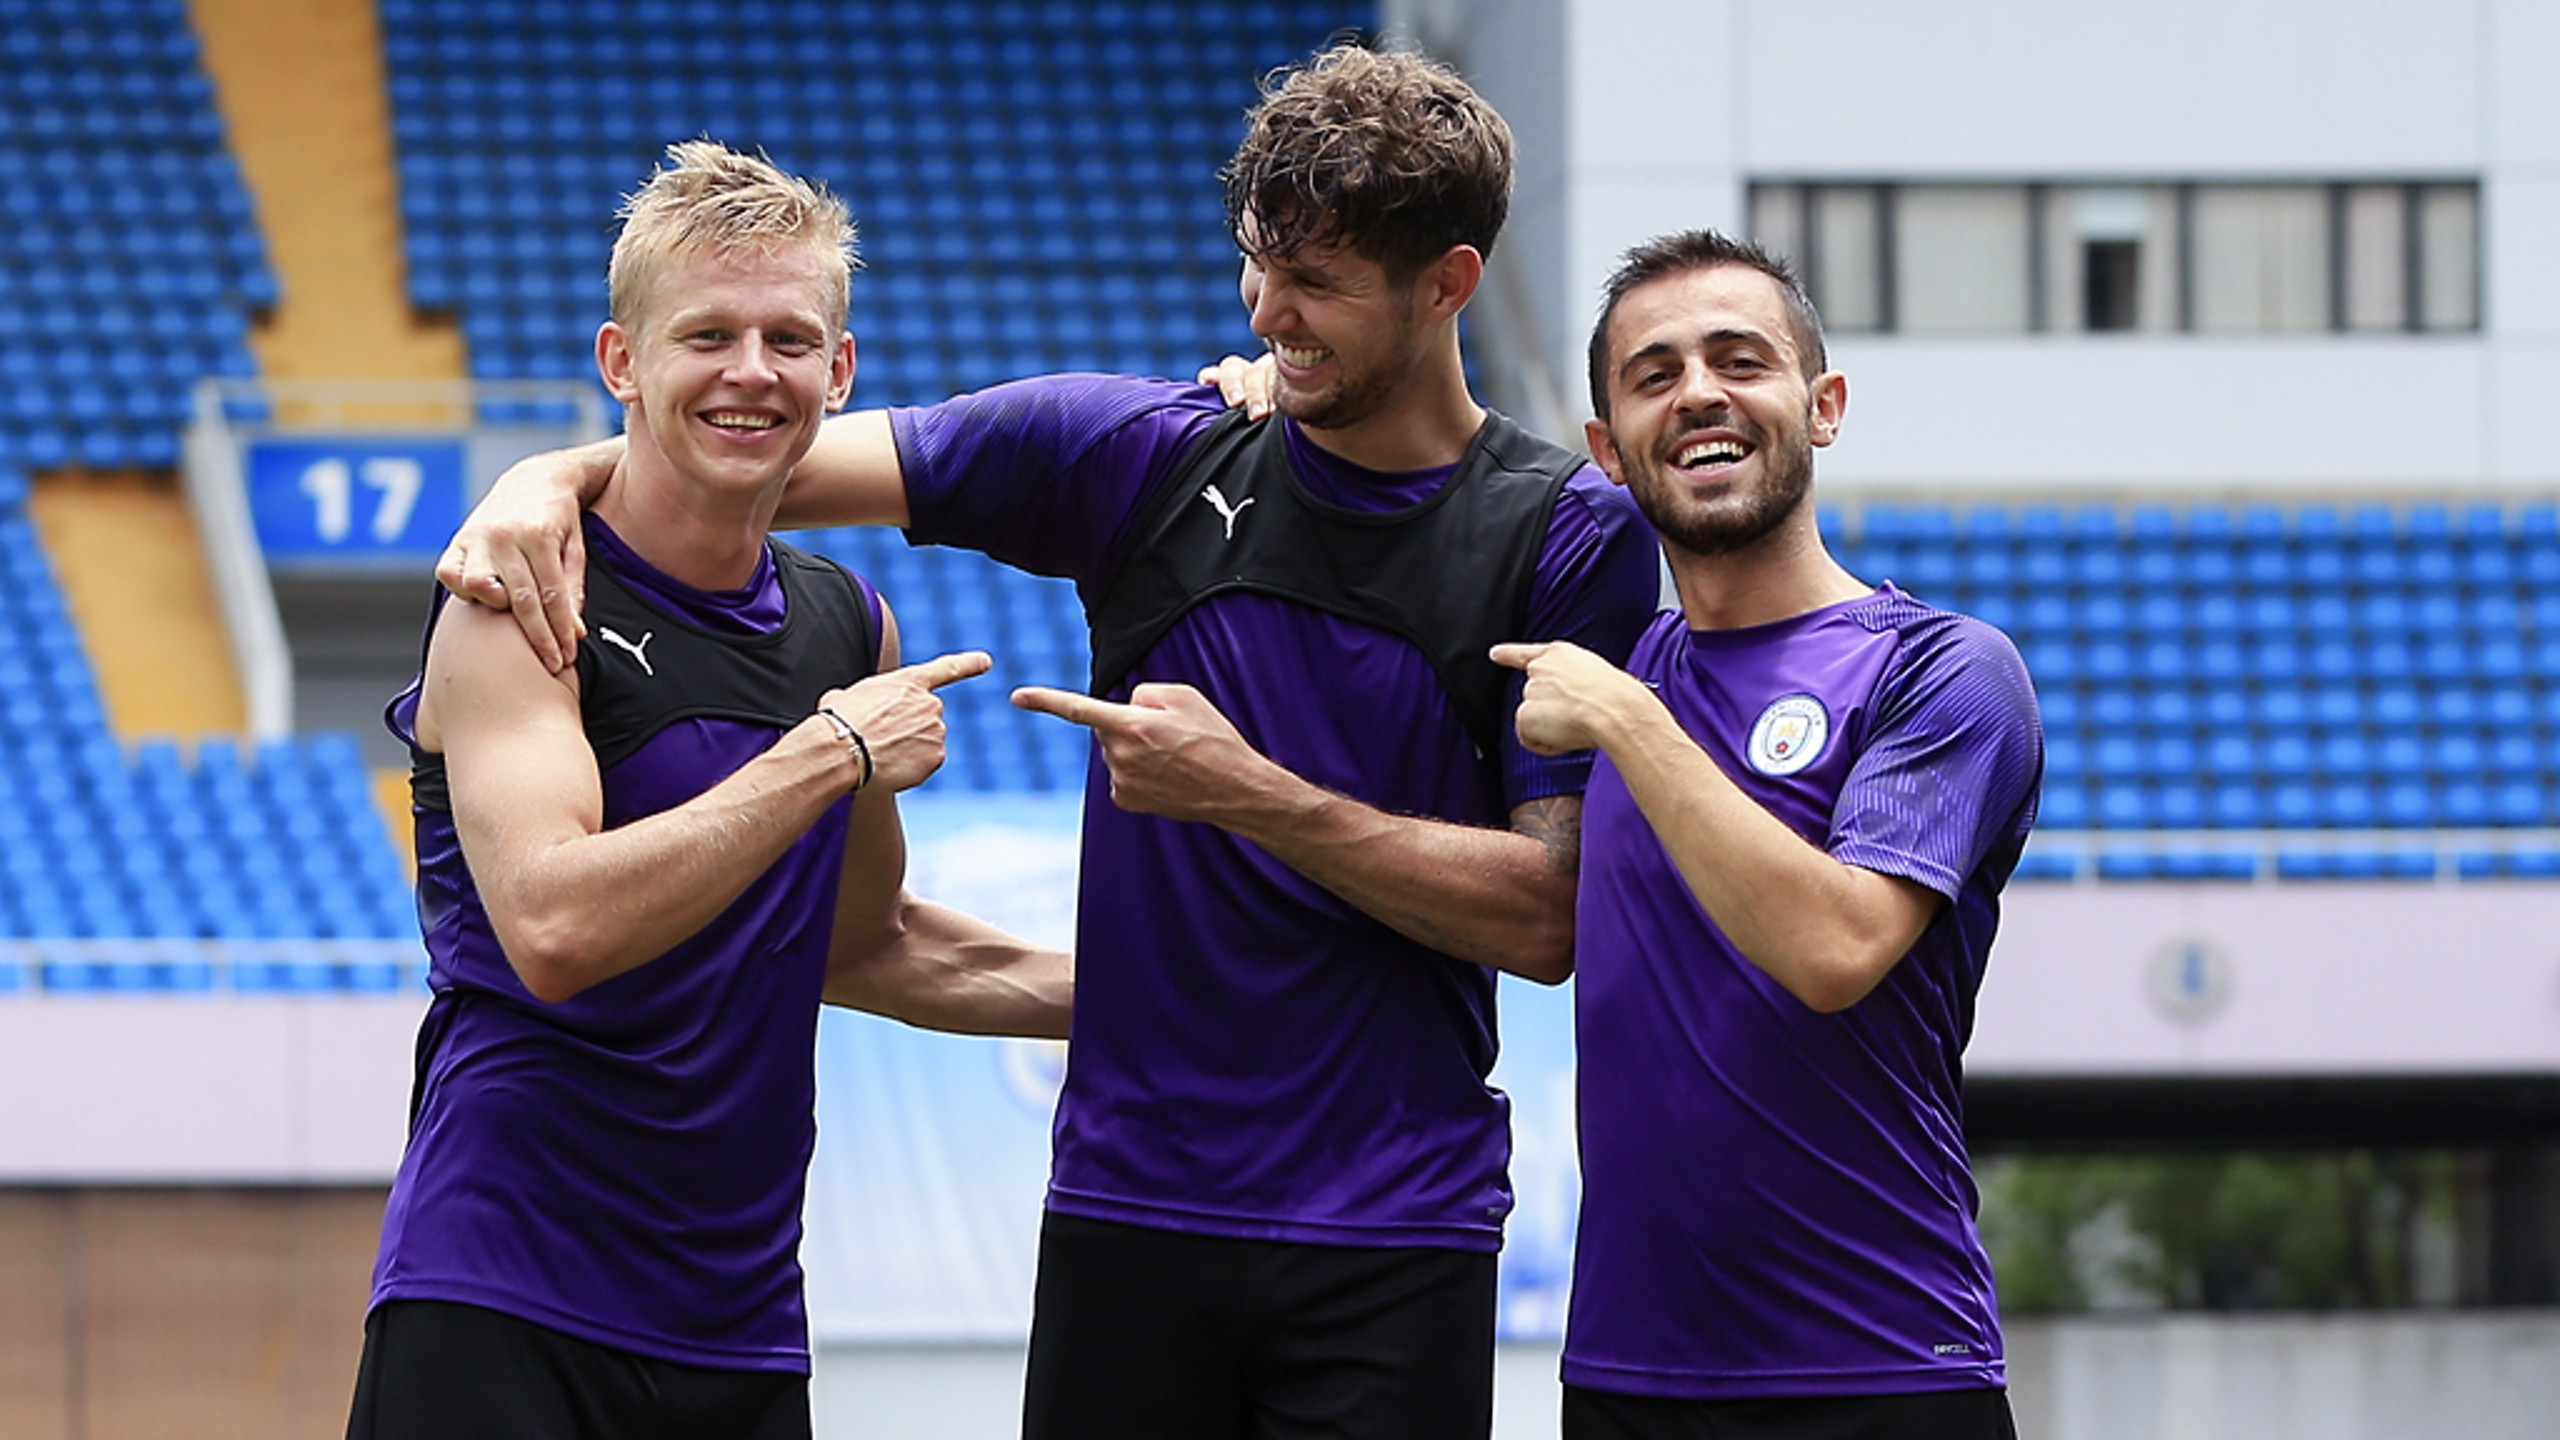 IT WASN'T ME: Happy, smiley Zinchenko, Stones and Bernardo